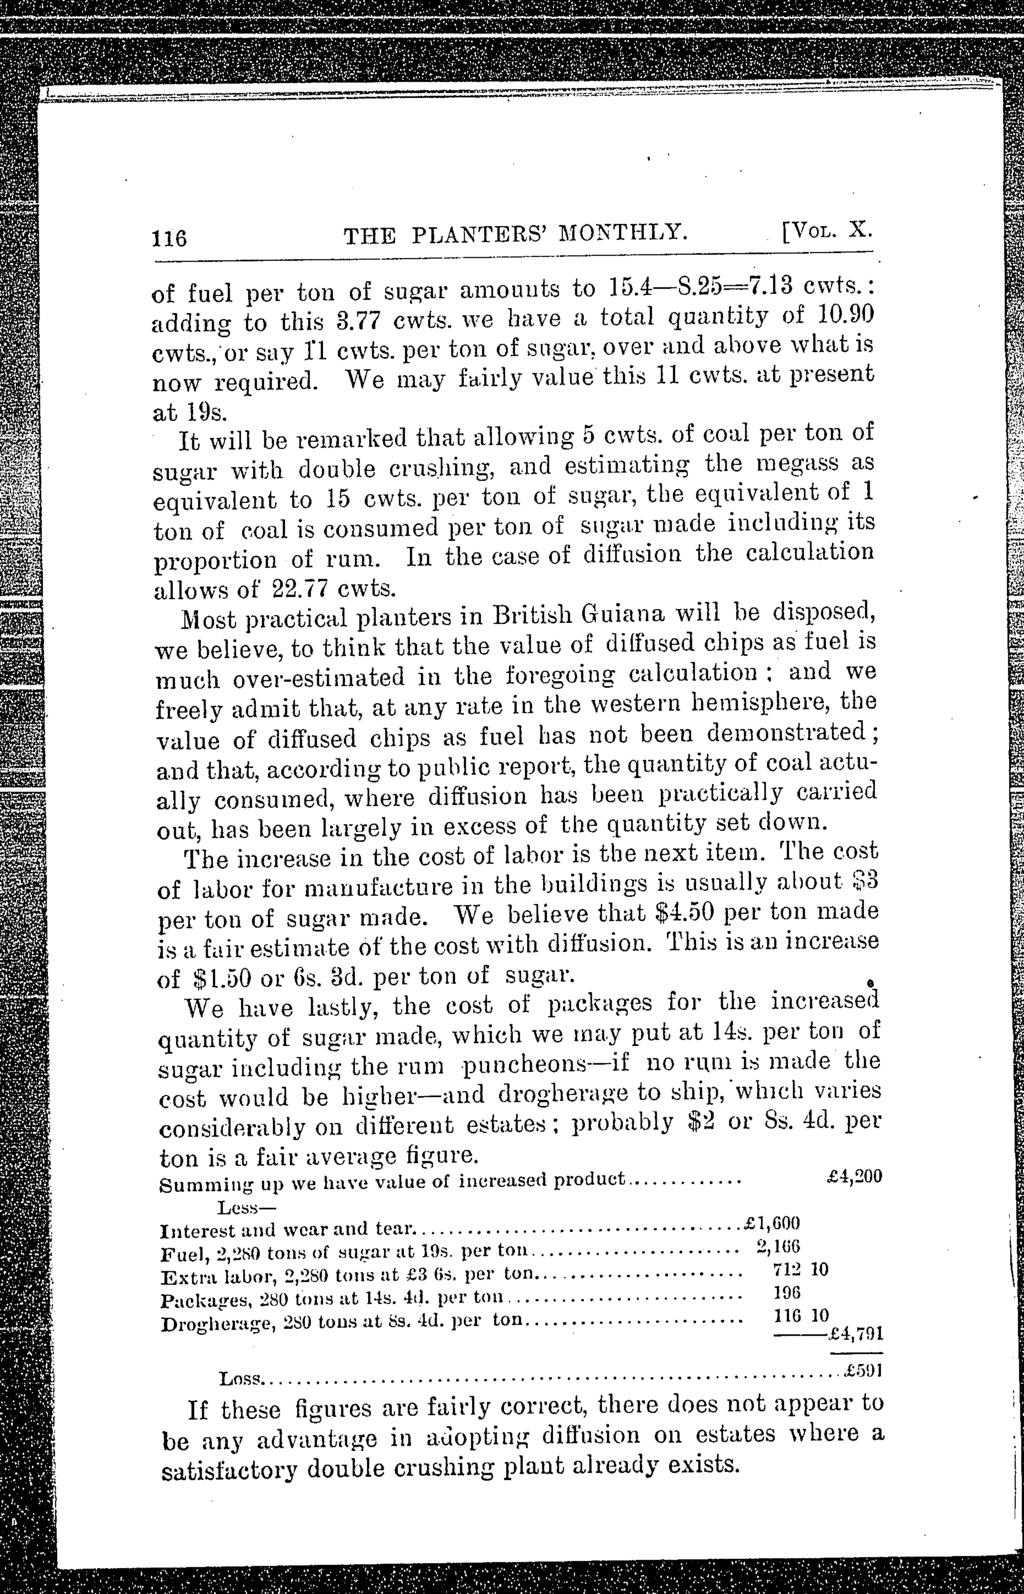 "116 THE PLANTERS' l\lonthly. [VOL. X. --------- of fuel per ton of sugar amouuts to 15.4-8.25=7.13 cwts.: adding to this 3.77 cwts. """"VB have a total quantity of 10.90 cwts.,'or say 1'1 cwts."